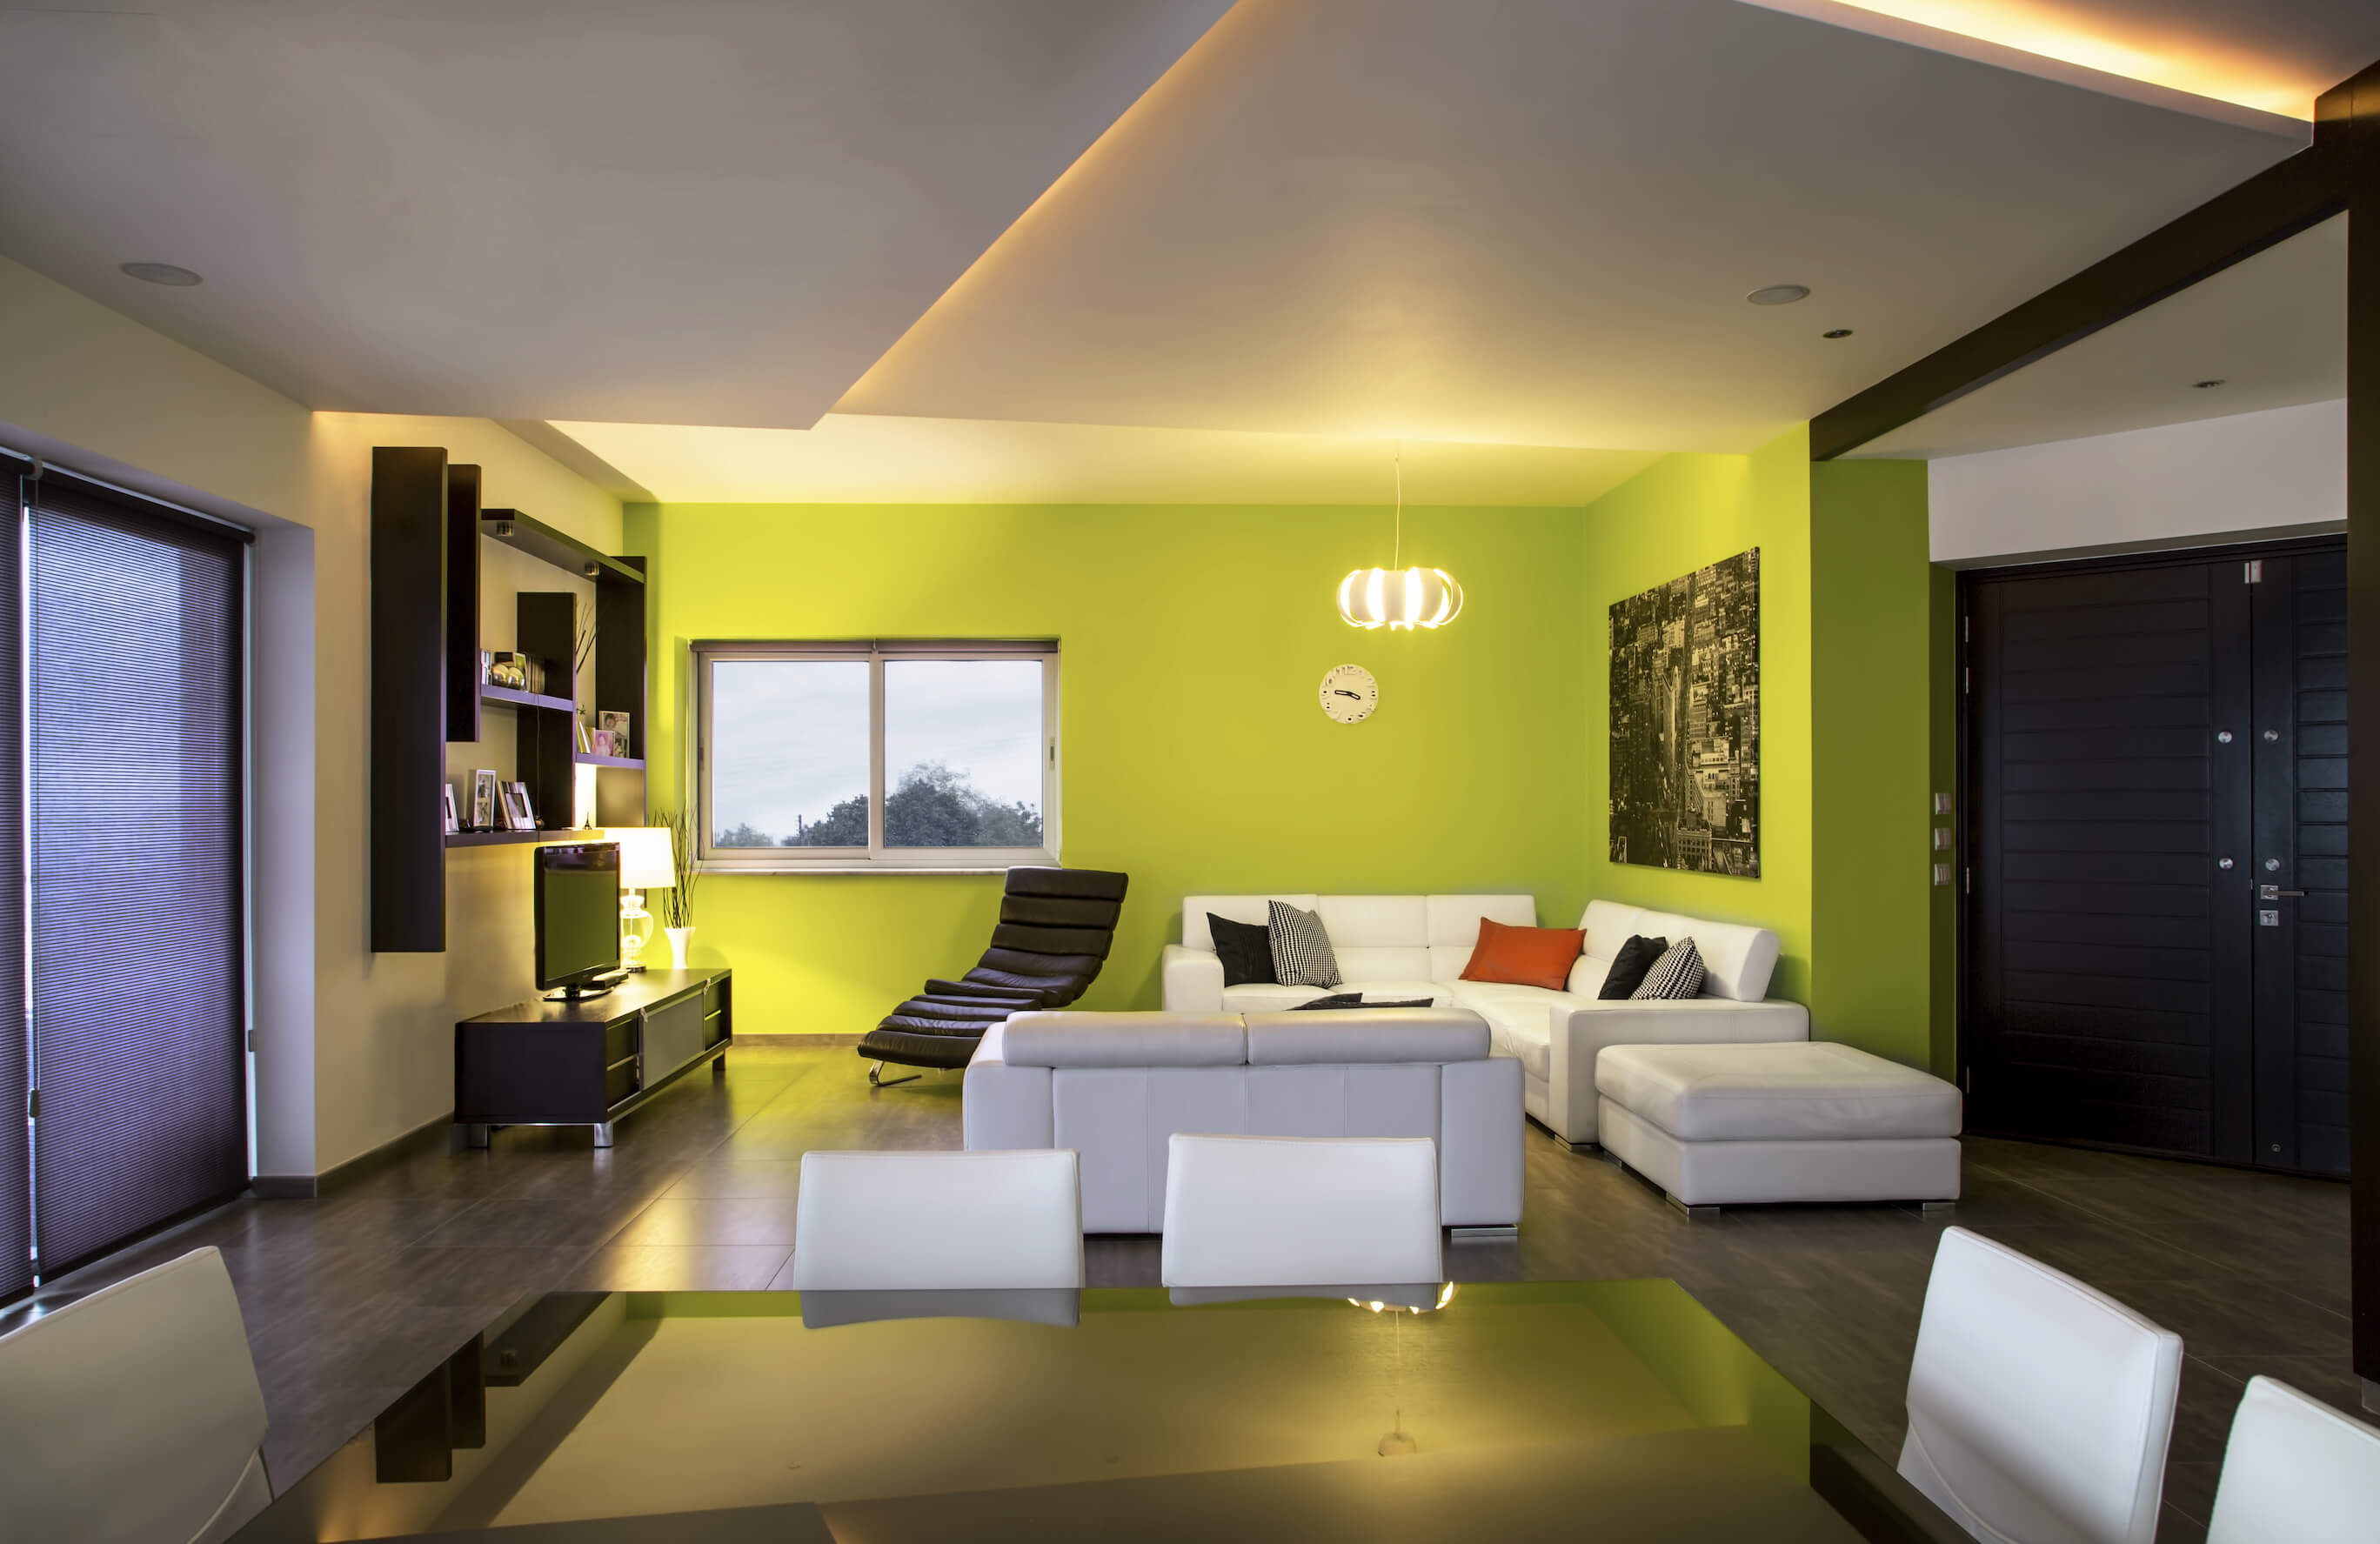 Viewed from across the deep black dining table, the living room stands hugged by a bold lime green set of walls, distinguishing a playful space from the rest of the home interior.